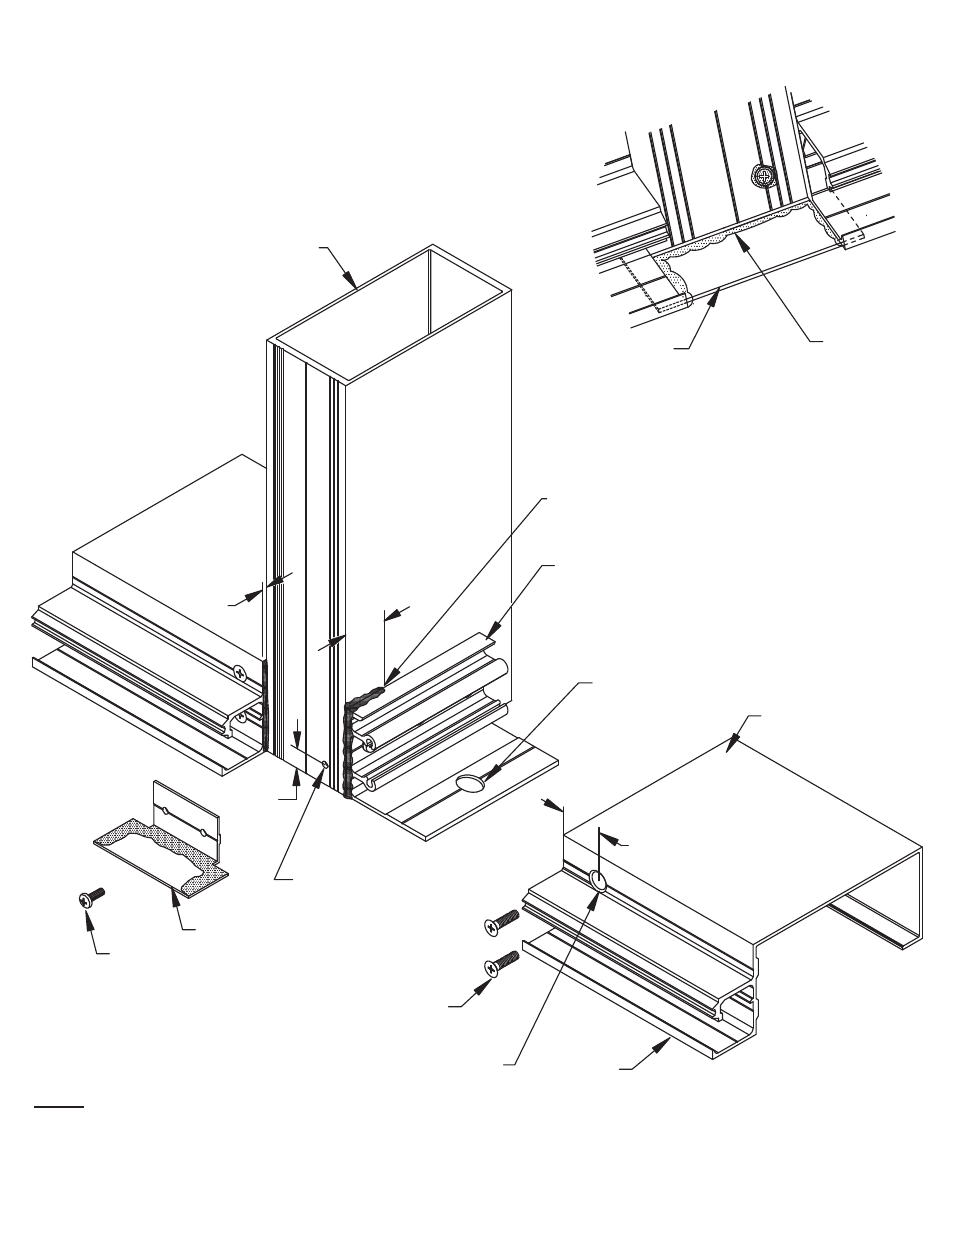 Oldcastle Curtain Wall Installation Instructions